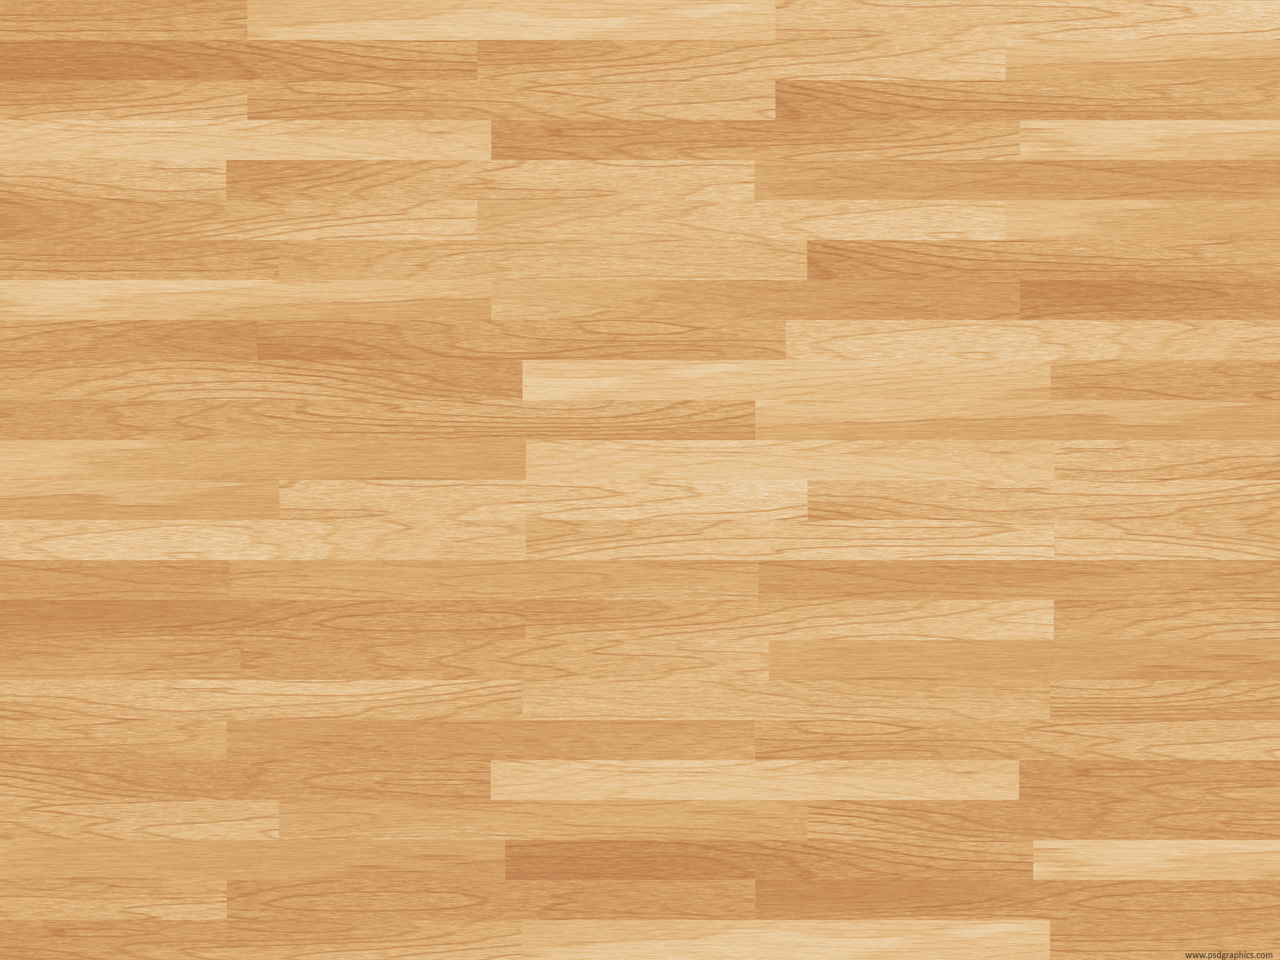 Wood floor texture wallpaper 1280x960 55883 for Hard floor tiles